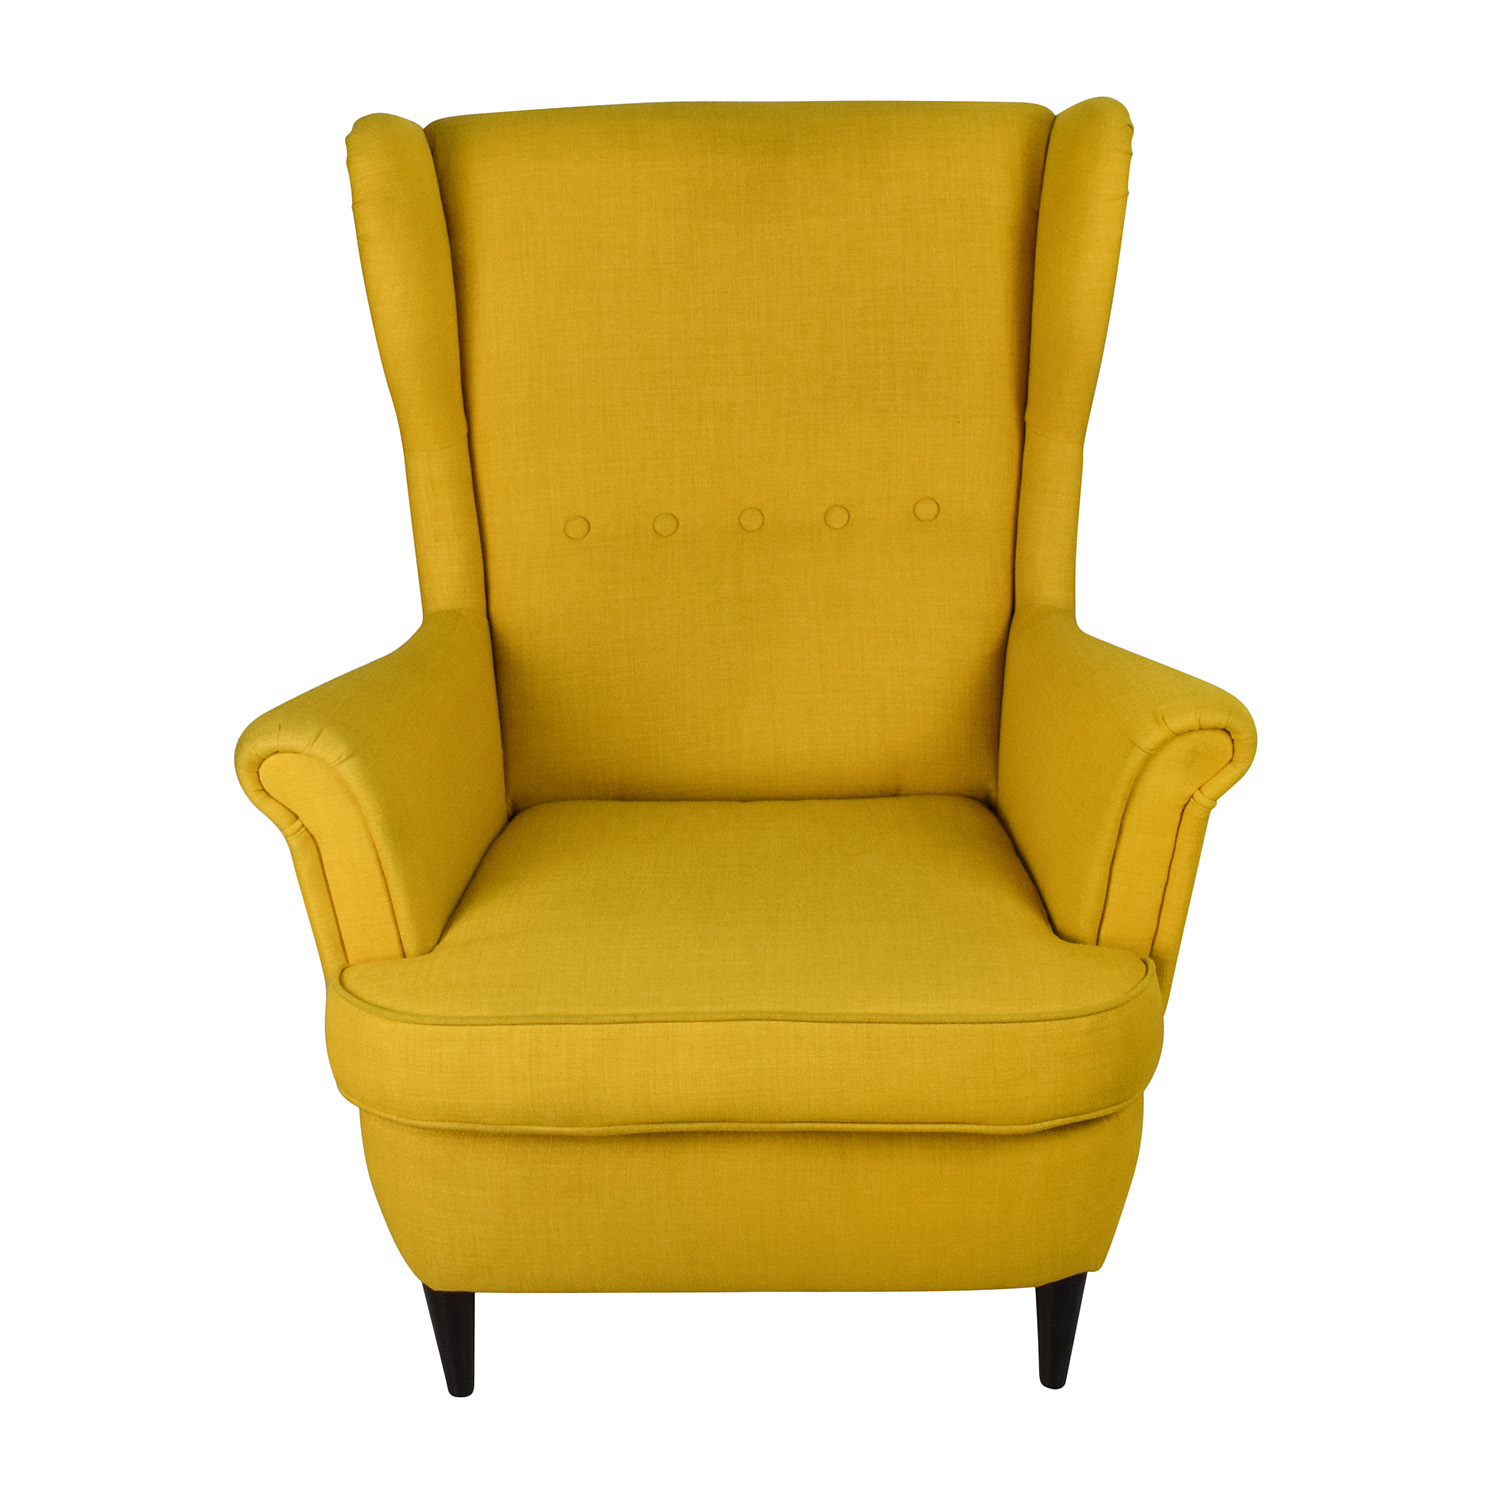 46% OFF - IKEA Strandmon Accent Armchair / Chairs